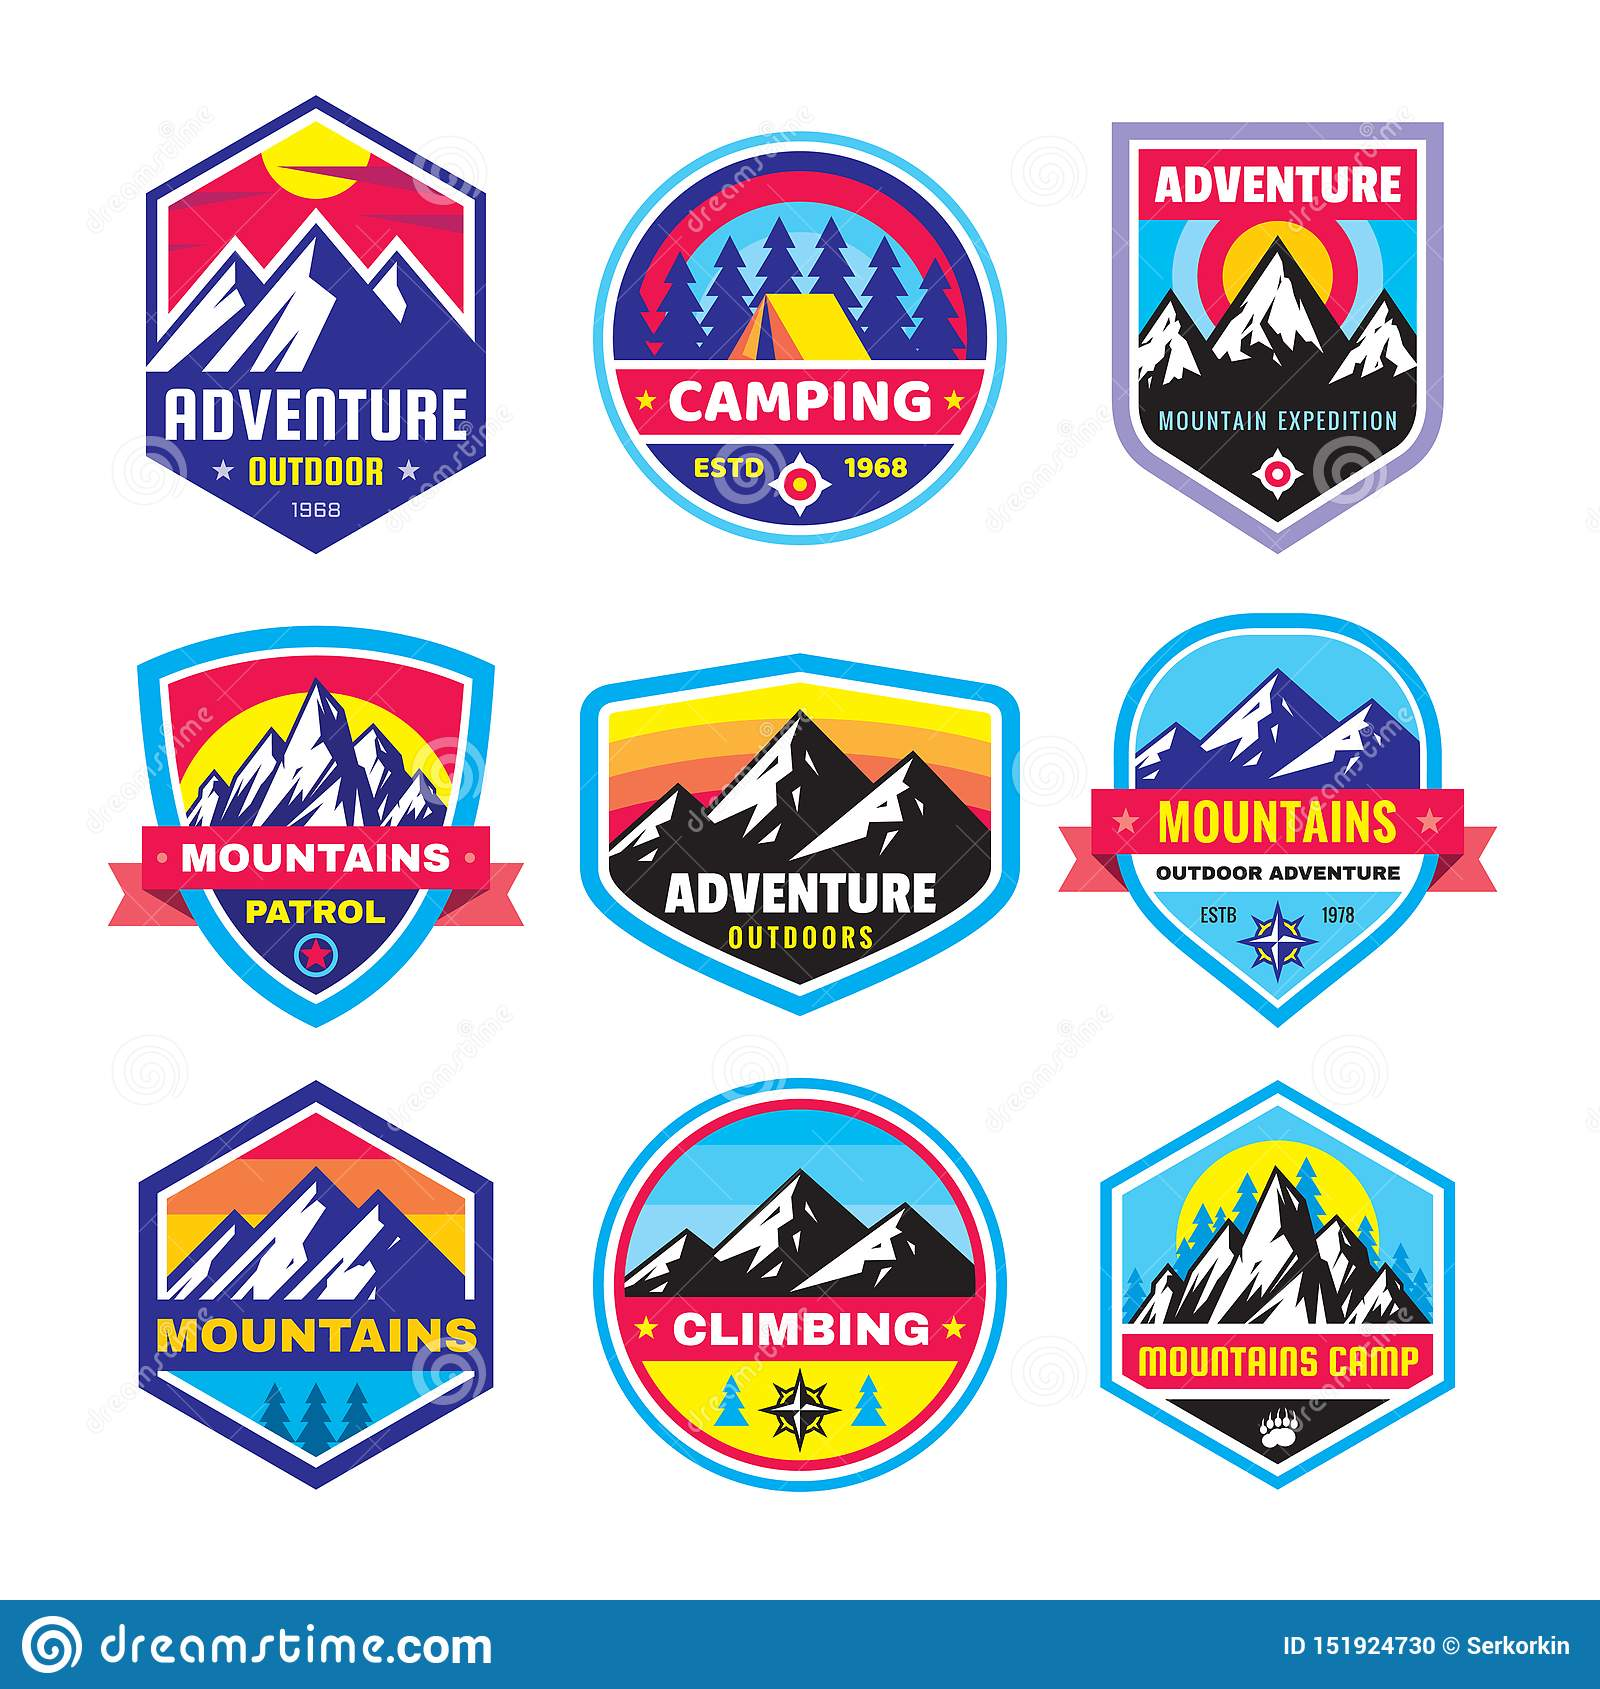 Set of adventure outdoor concept badges, summer camping emblem, mountain climbing logo in flat style. Creative vector illustration